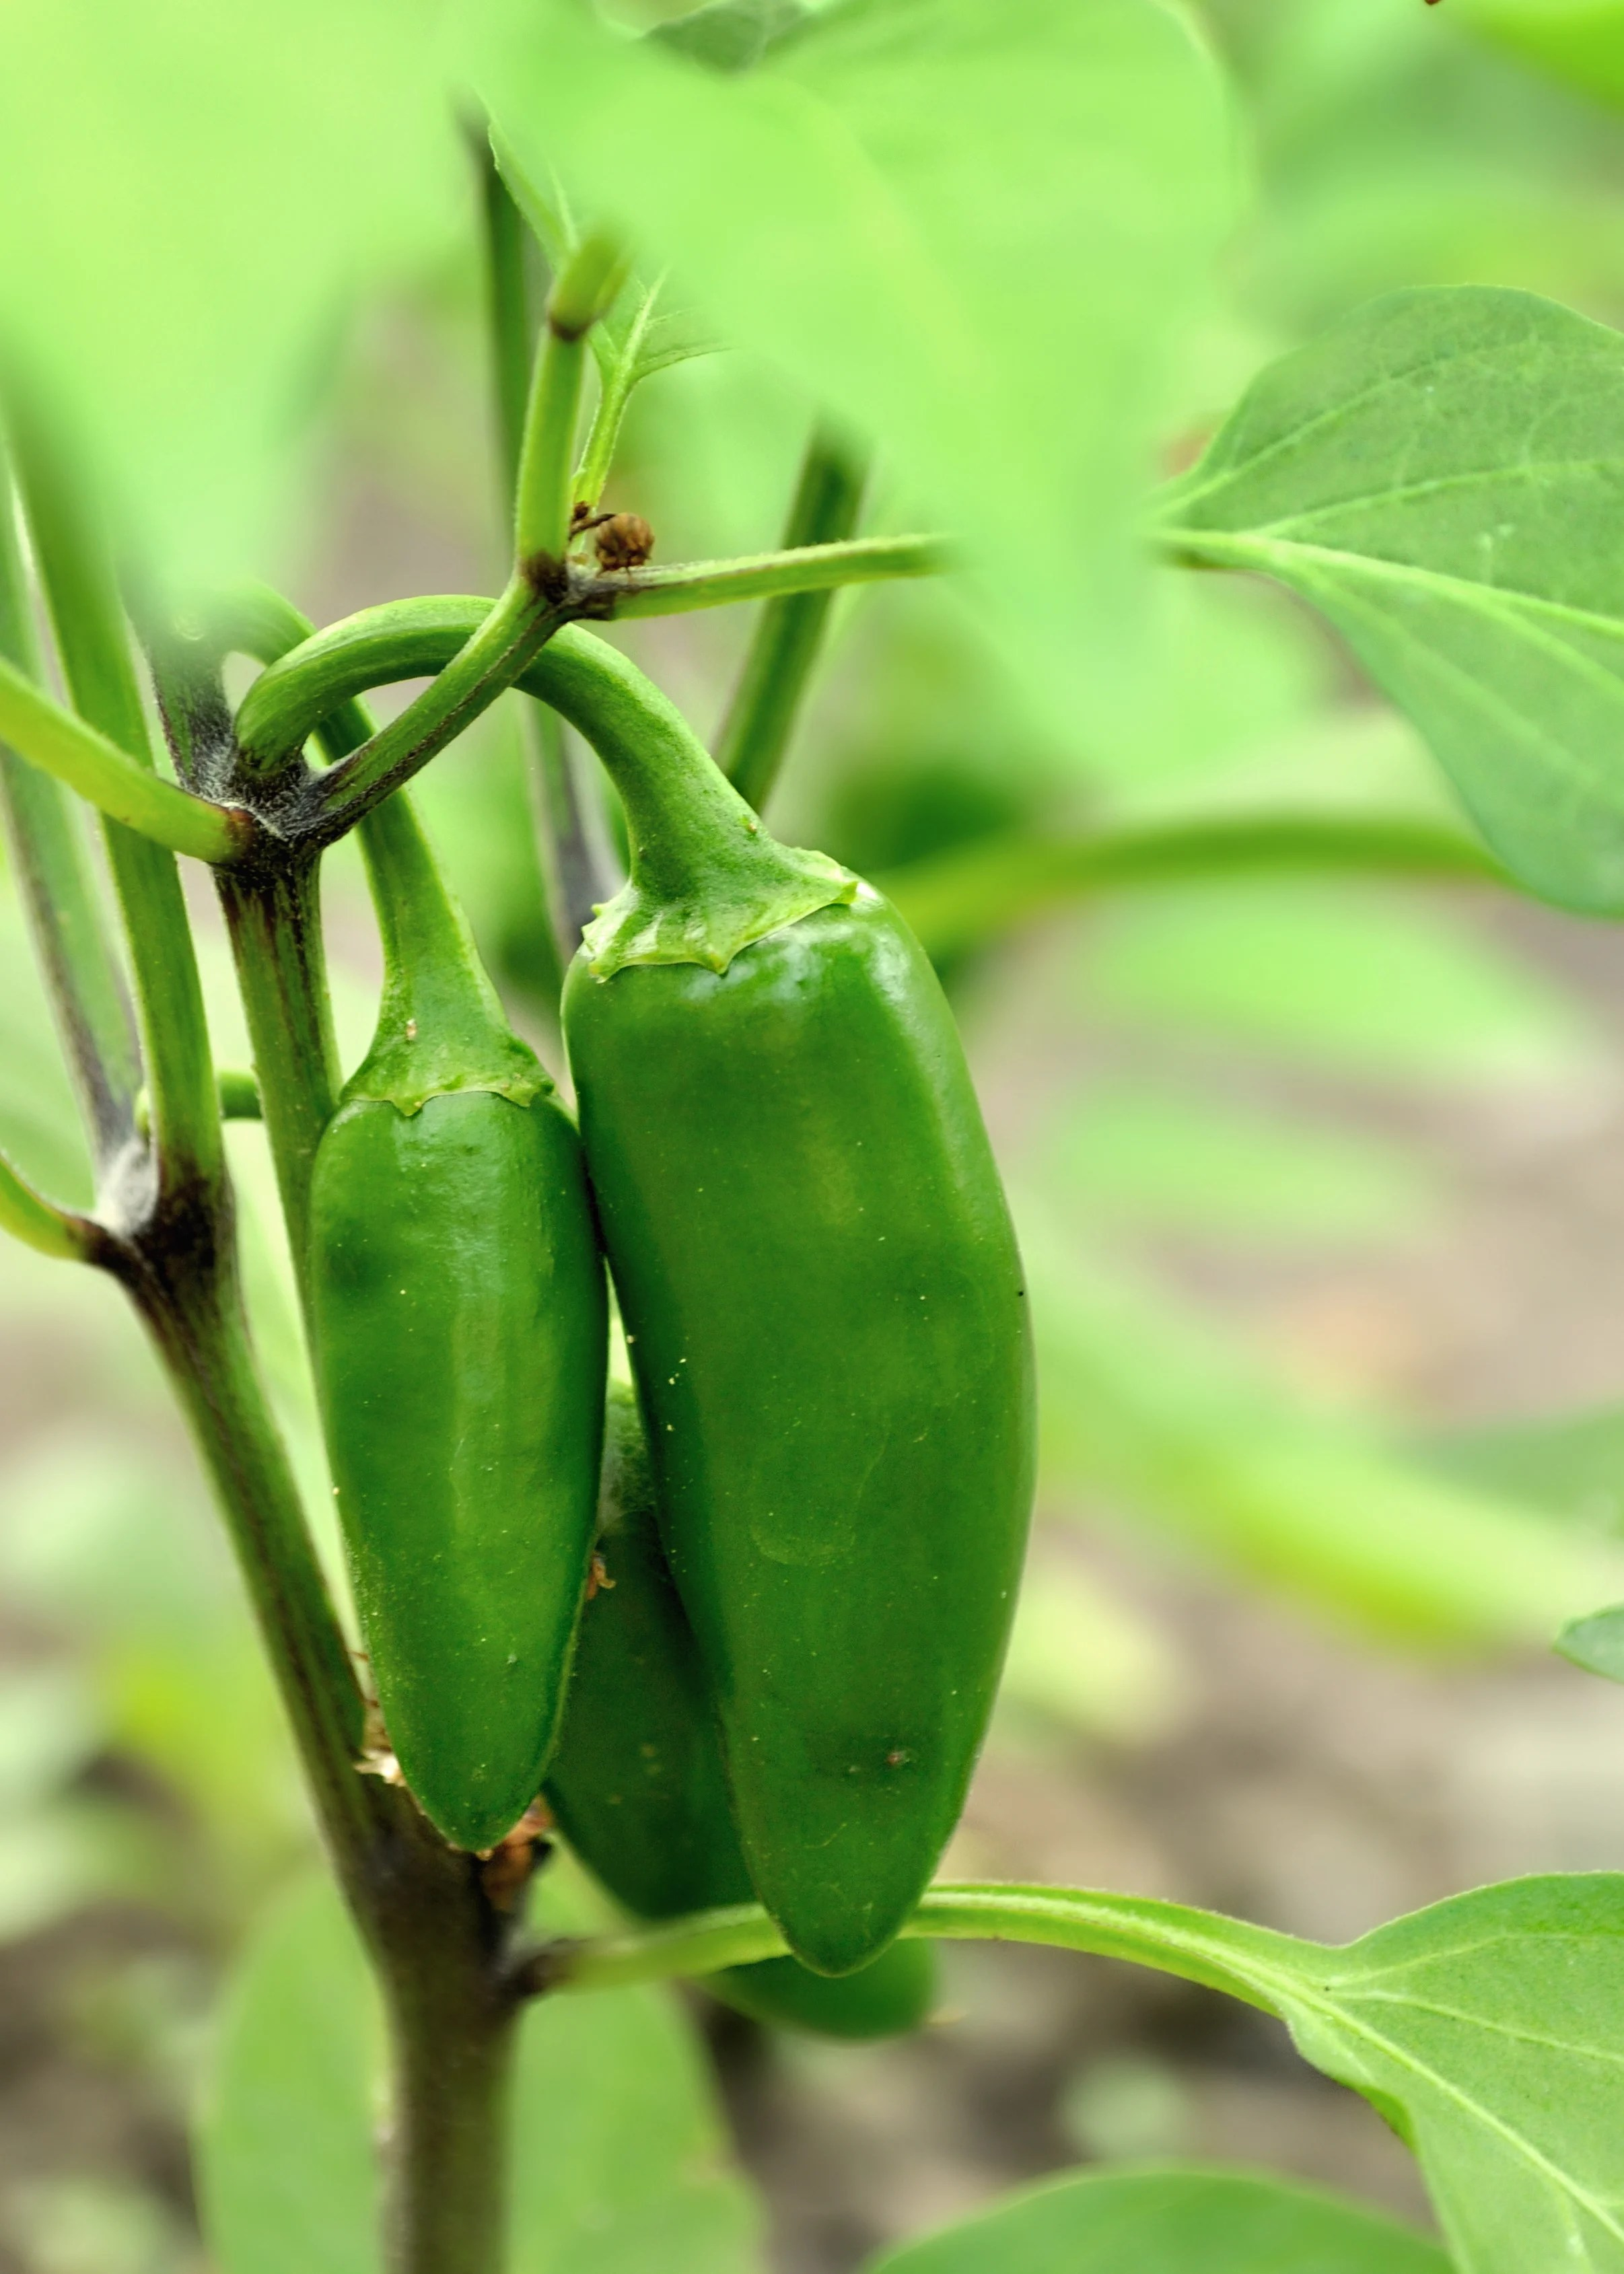 30 Second Guide to Growing Peppers